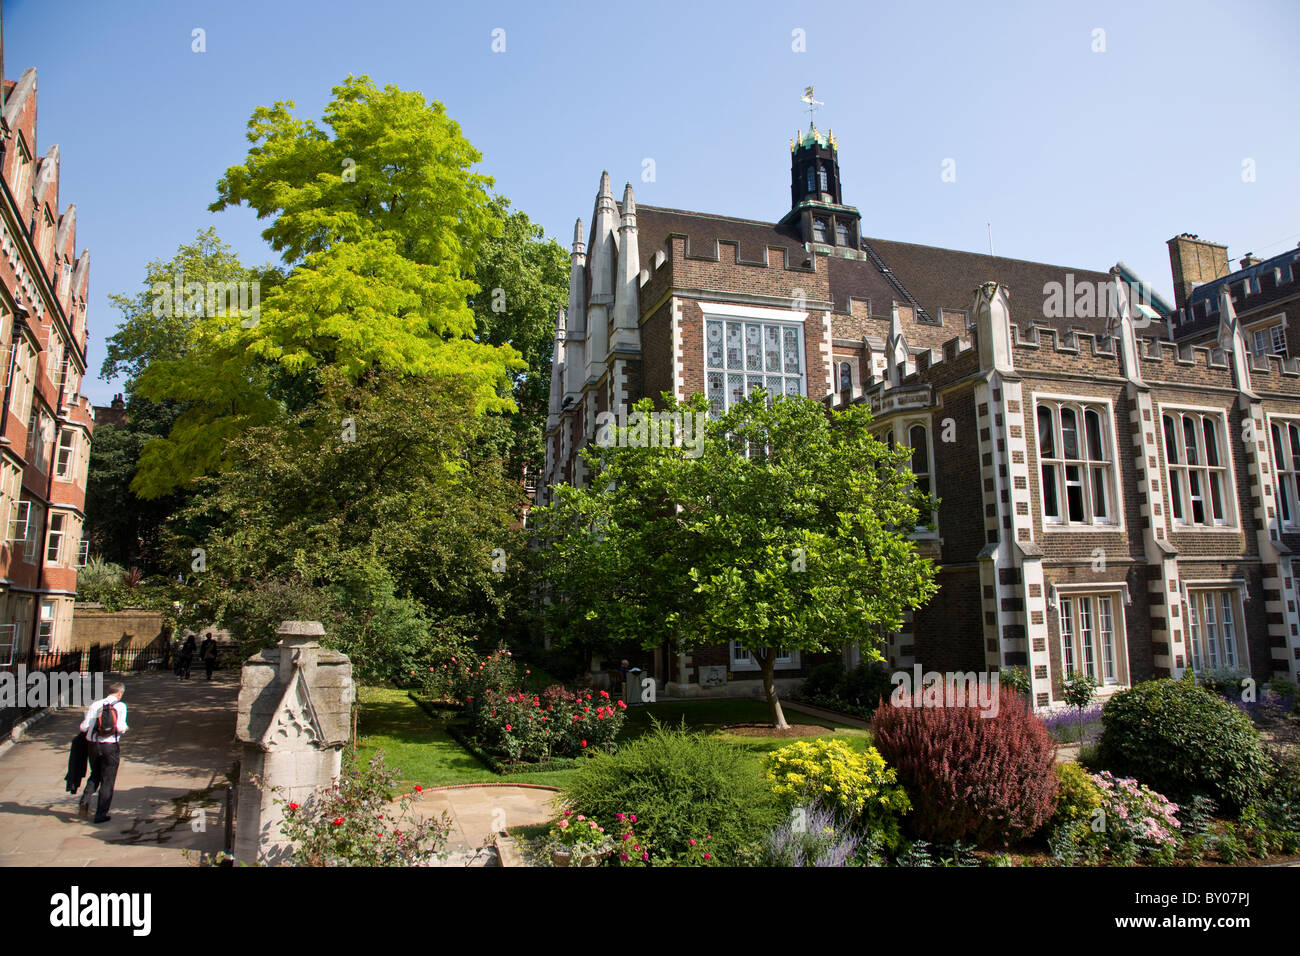 Middle Temple Hall garden in the Inns of Court - Stock Image